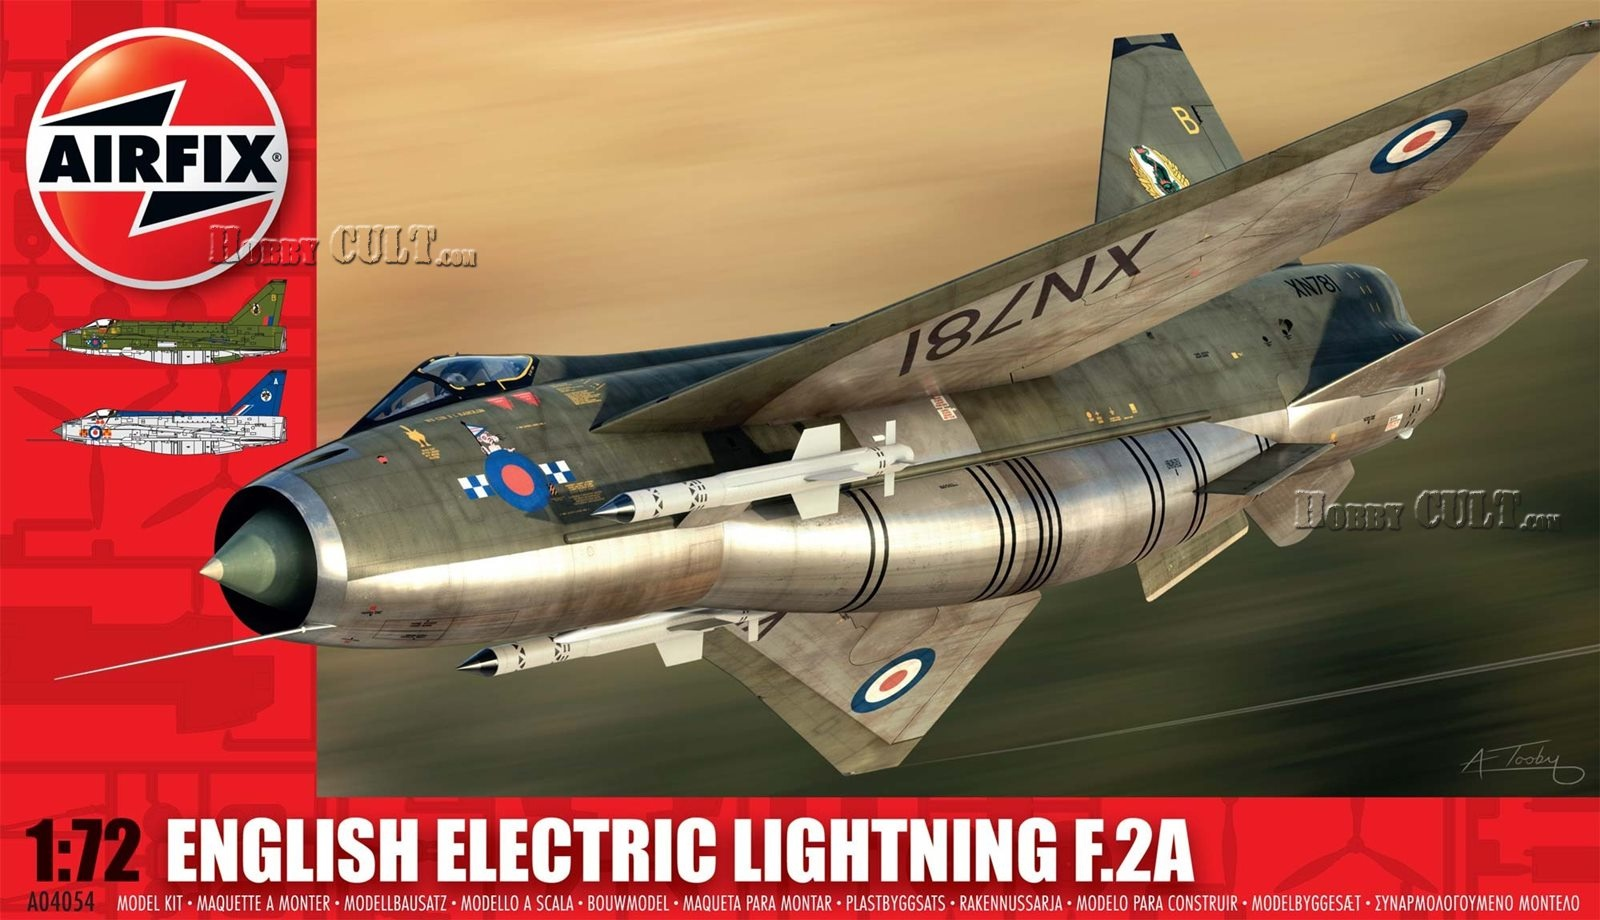 1:72 English Electric Lightning F.2A